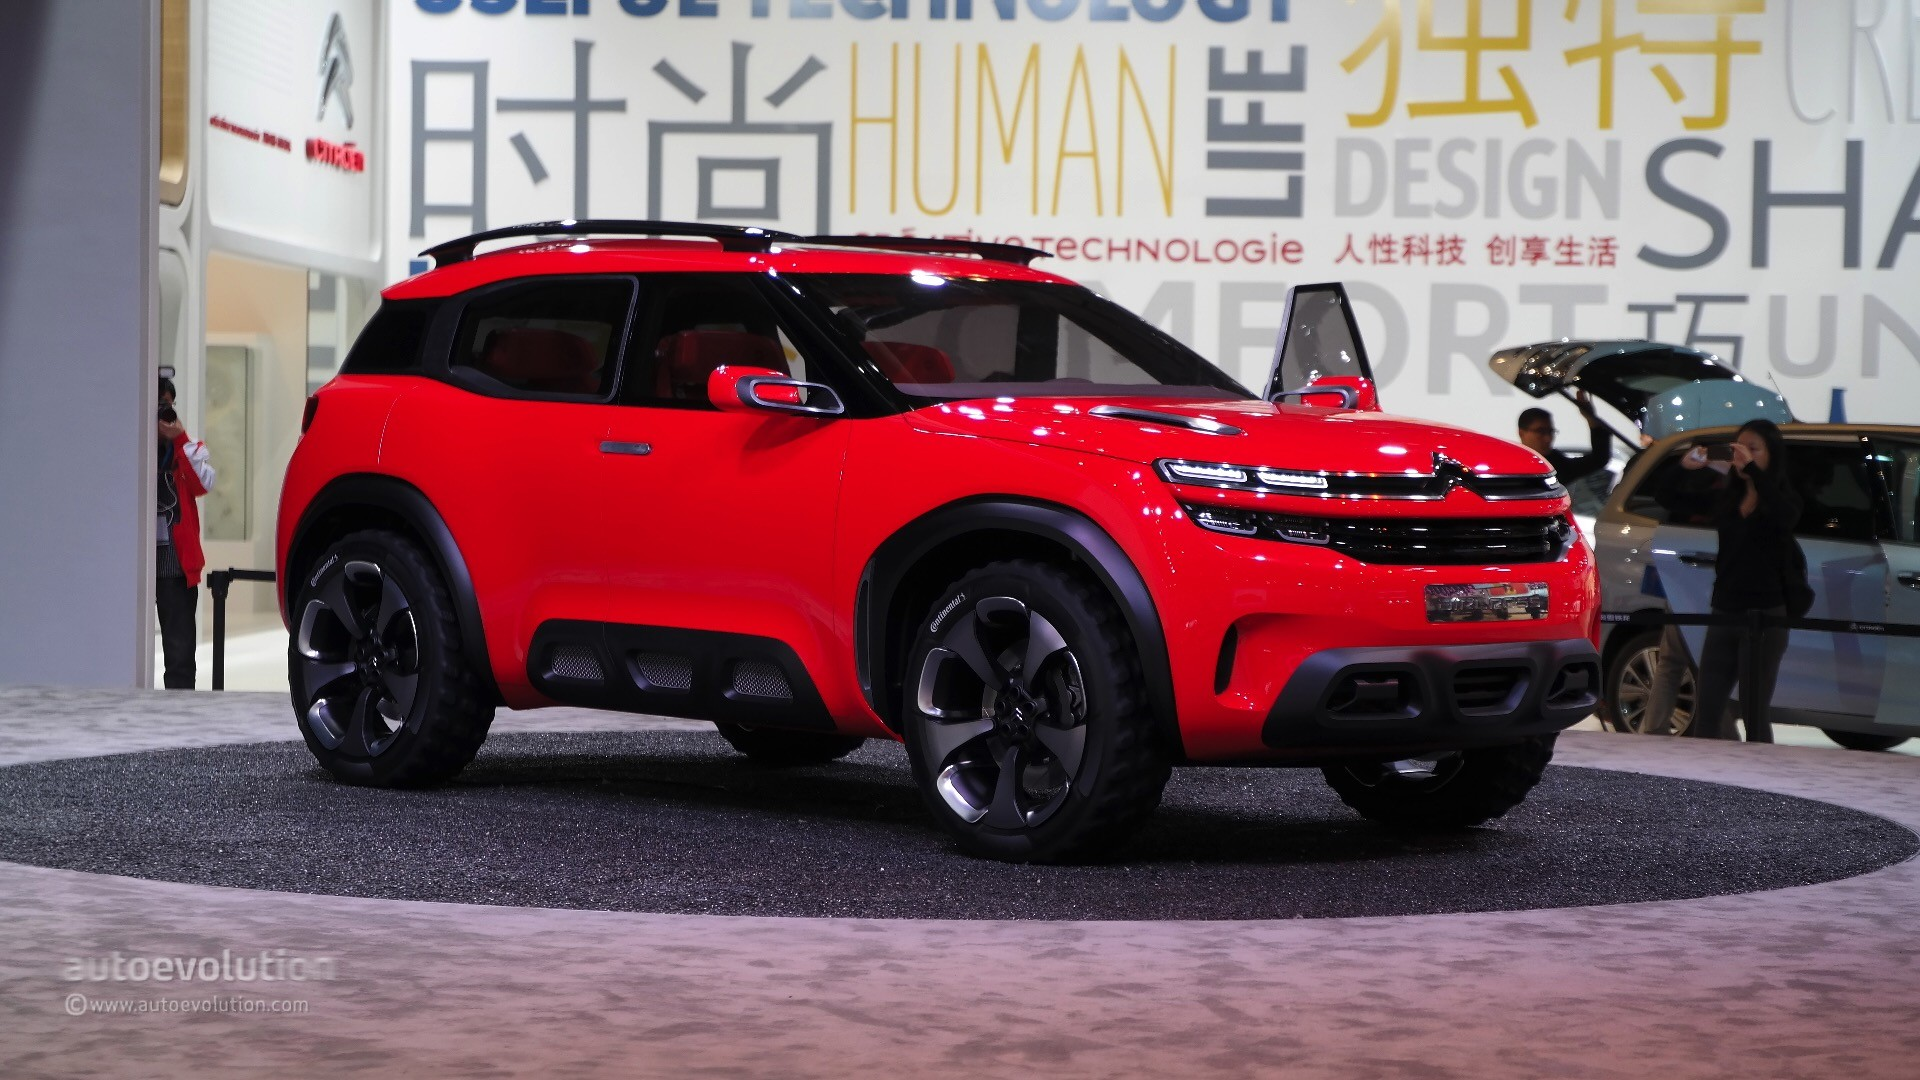 citroen aircross concept makes a first appearance at the 2015 shanghai auto show autoevolution. Black Bedroom Furniture Sets. Home Design Ideas